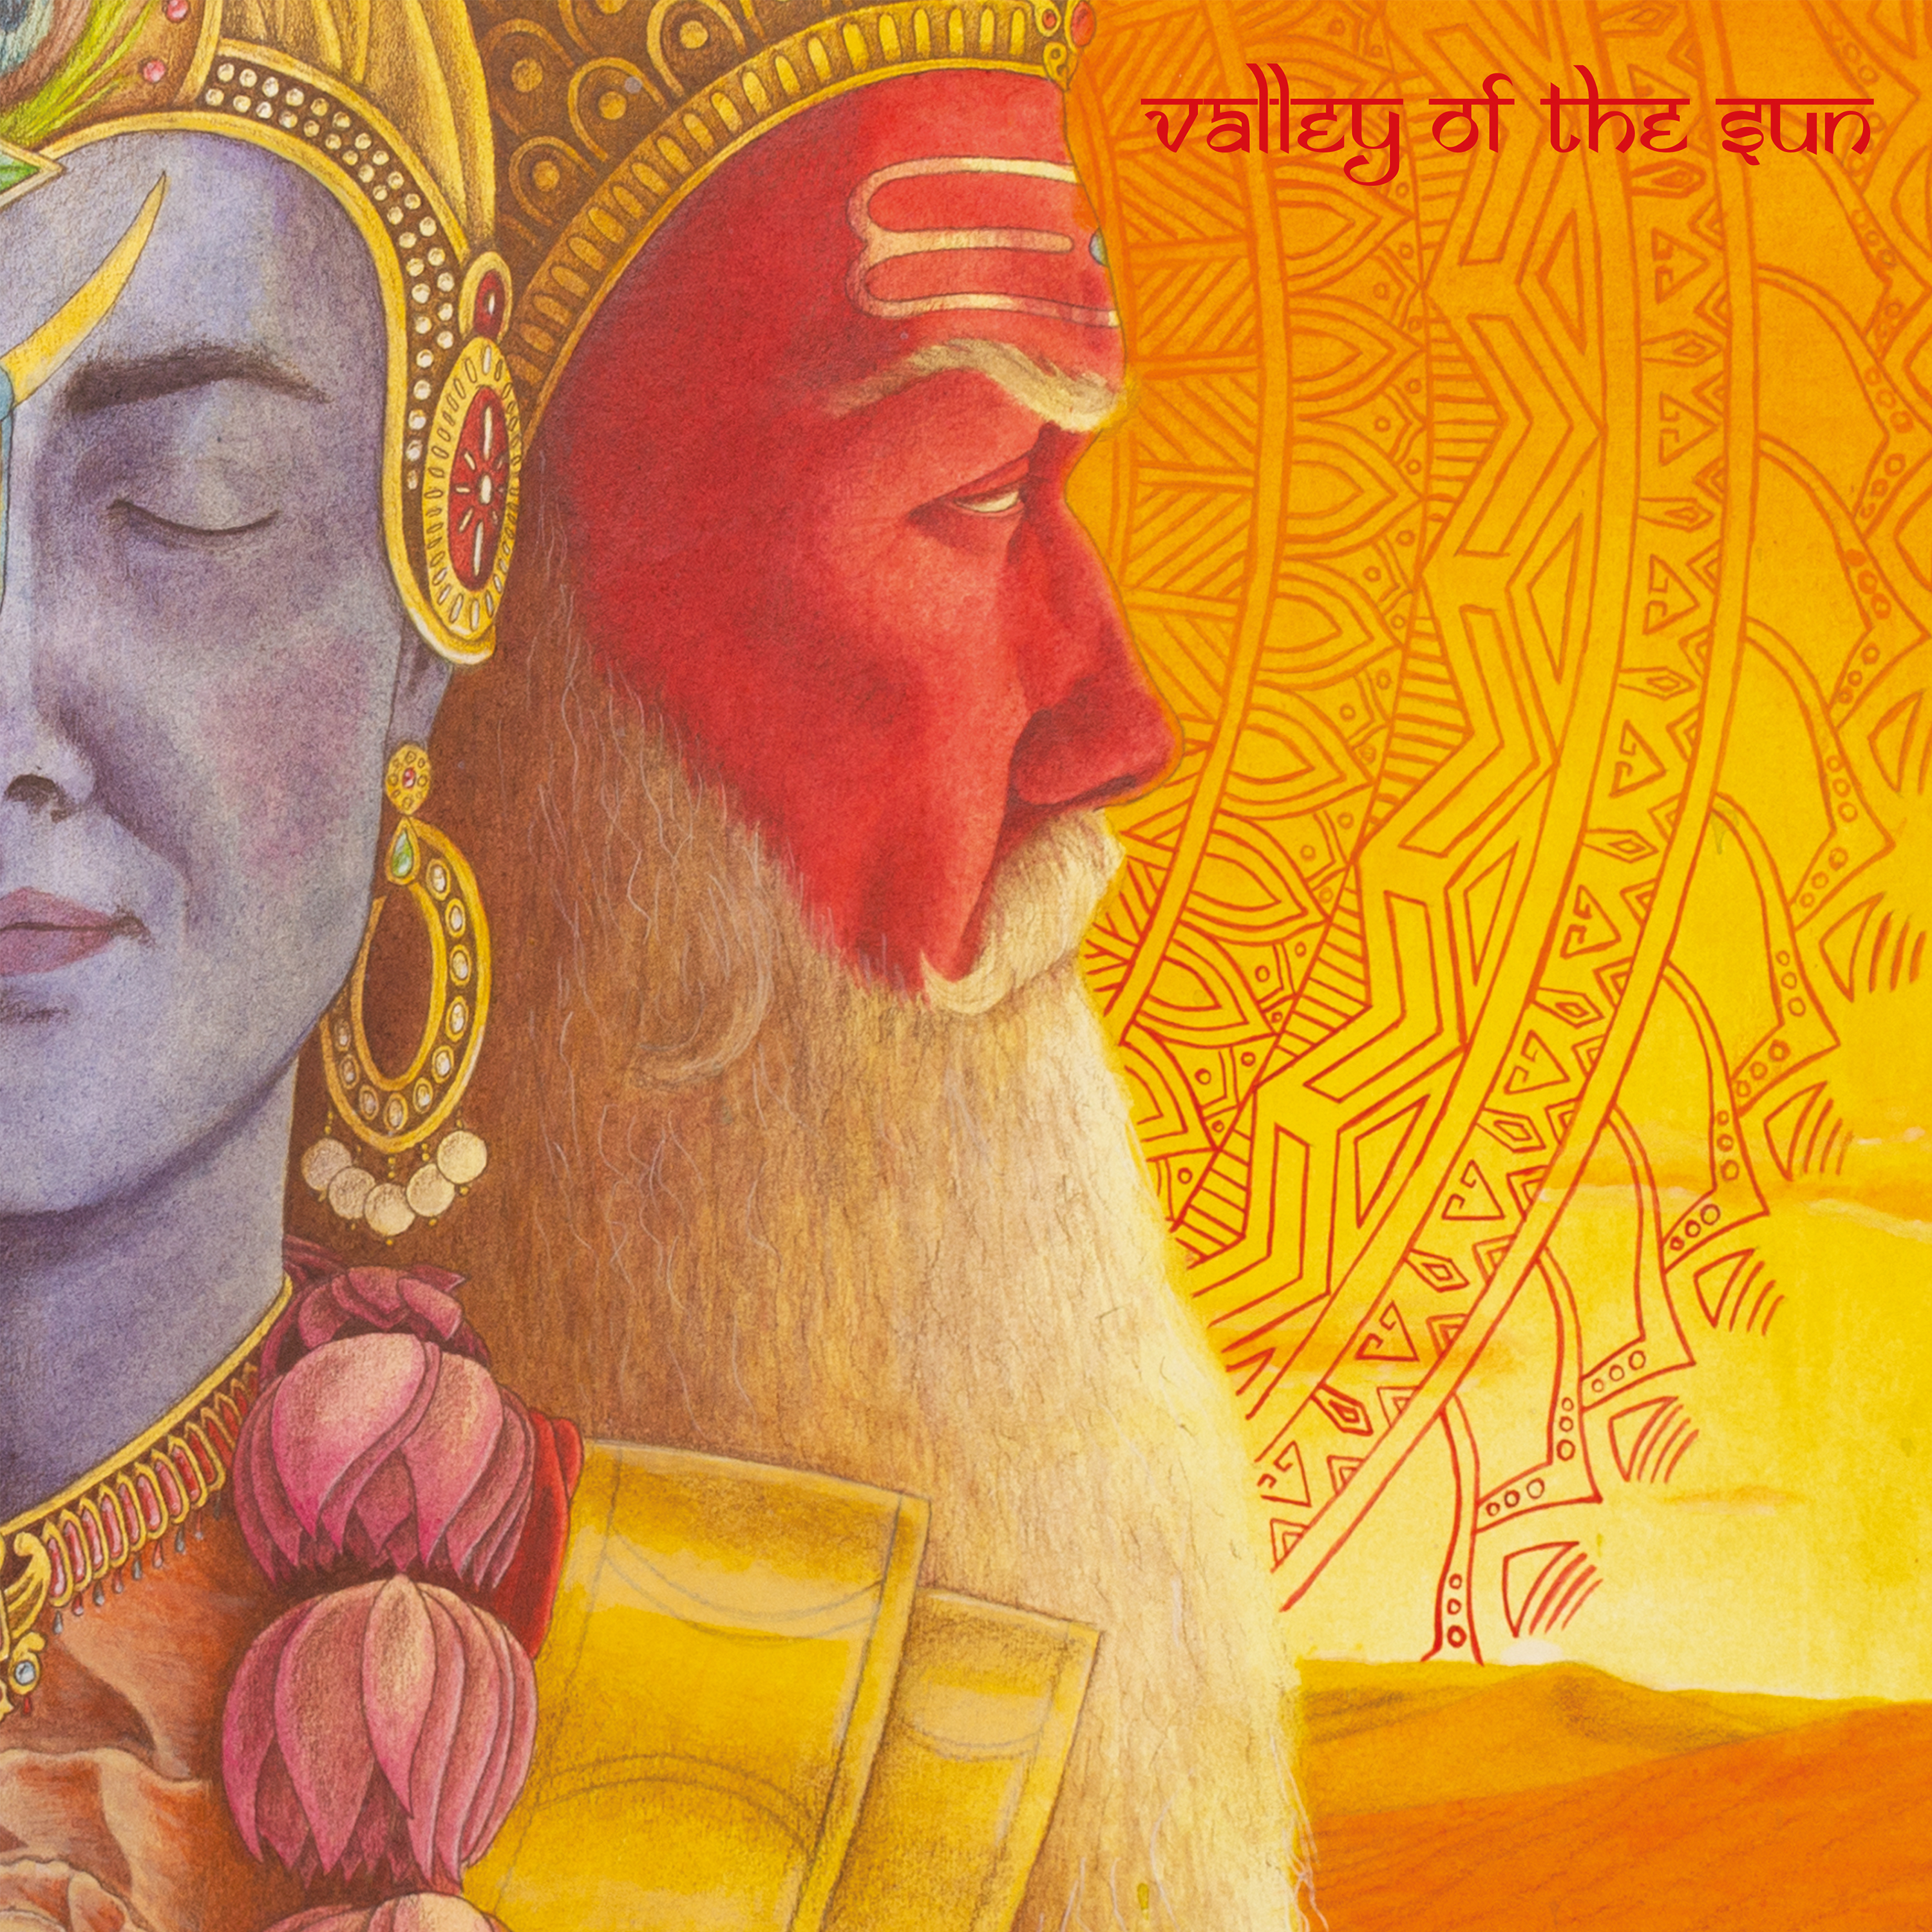 valley-of-the-sun-old-gods-album-review